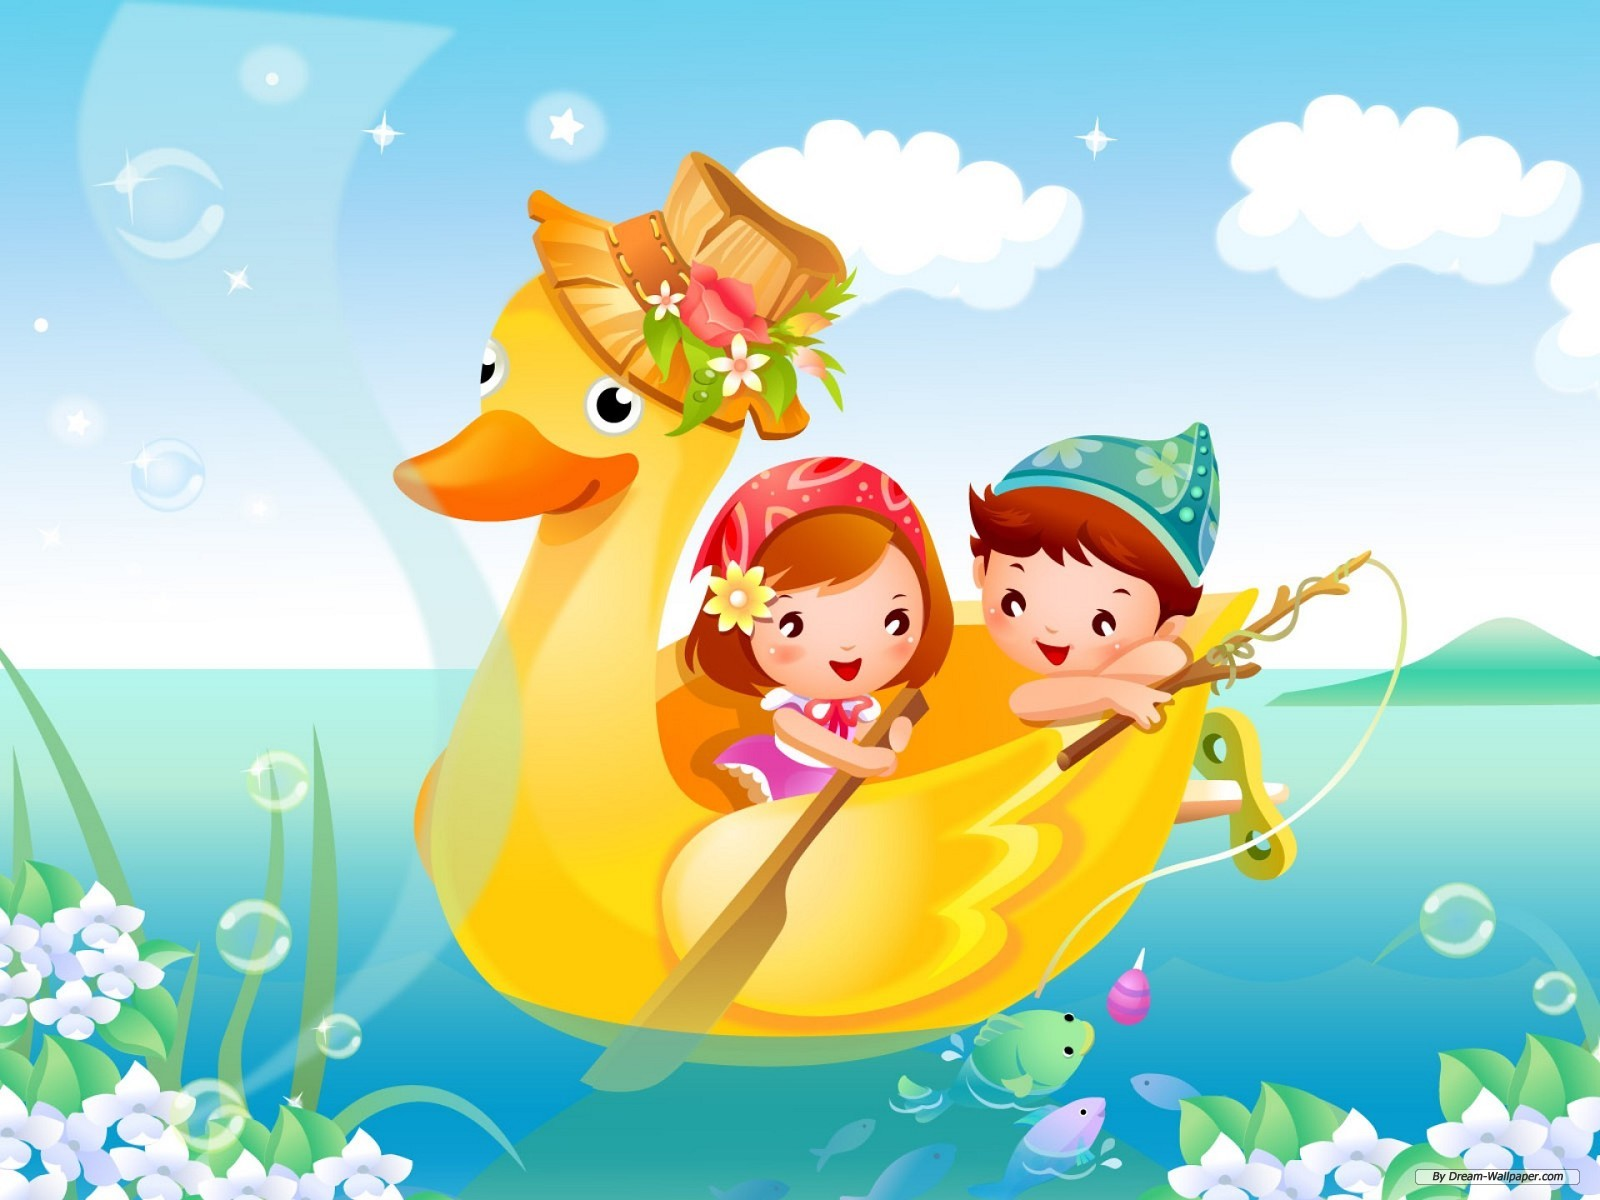 Wallpaper   Cartoon wallpaper   Children Games 3 wallpaper 1600x1200